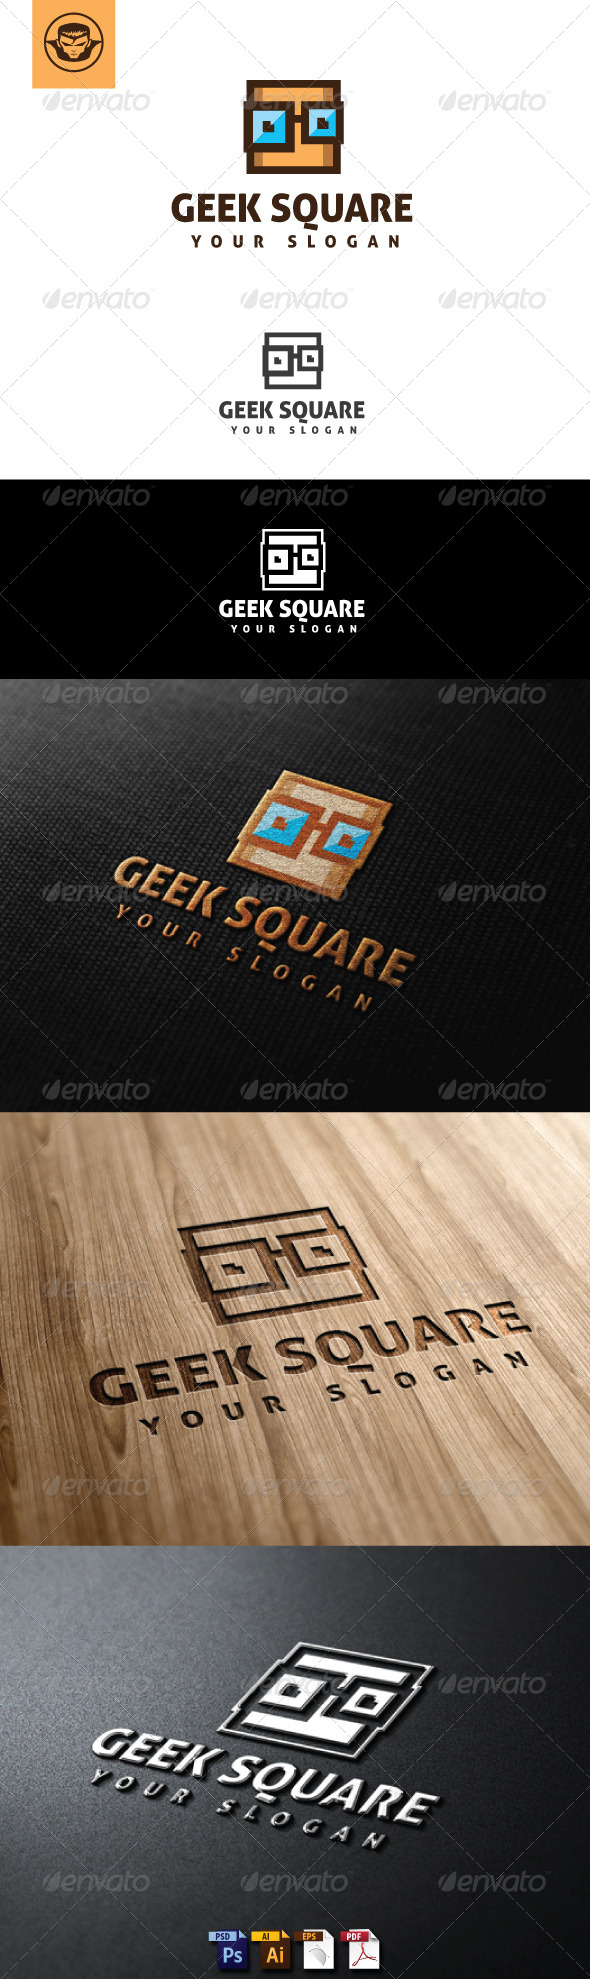 GraphicRiver Geek Square Logo Template 5146959